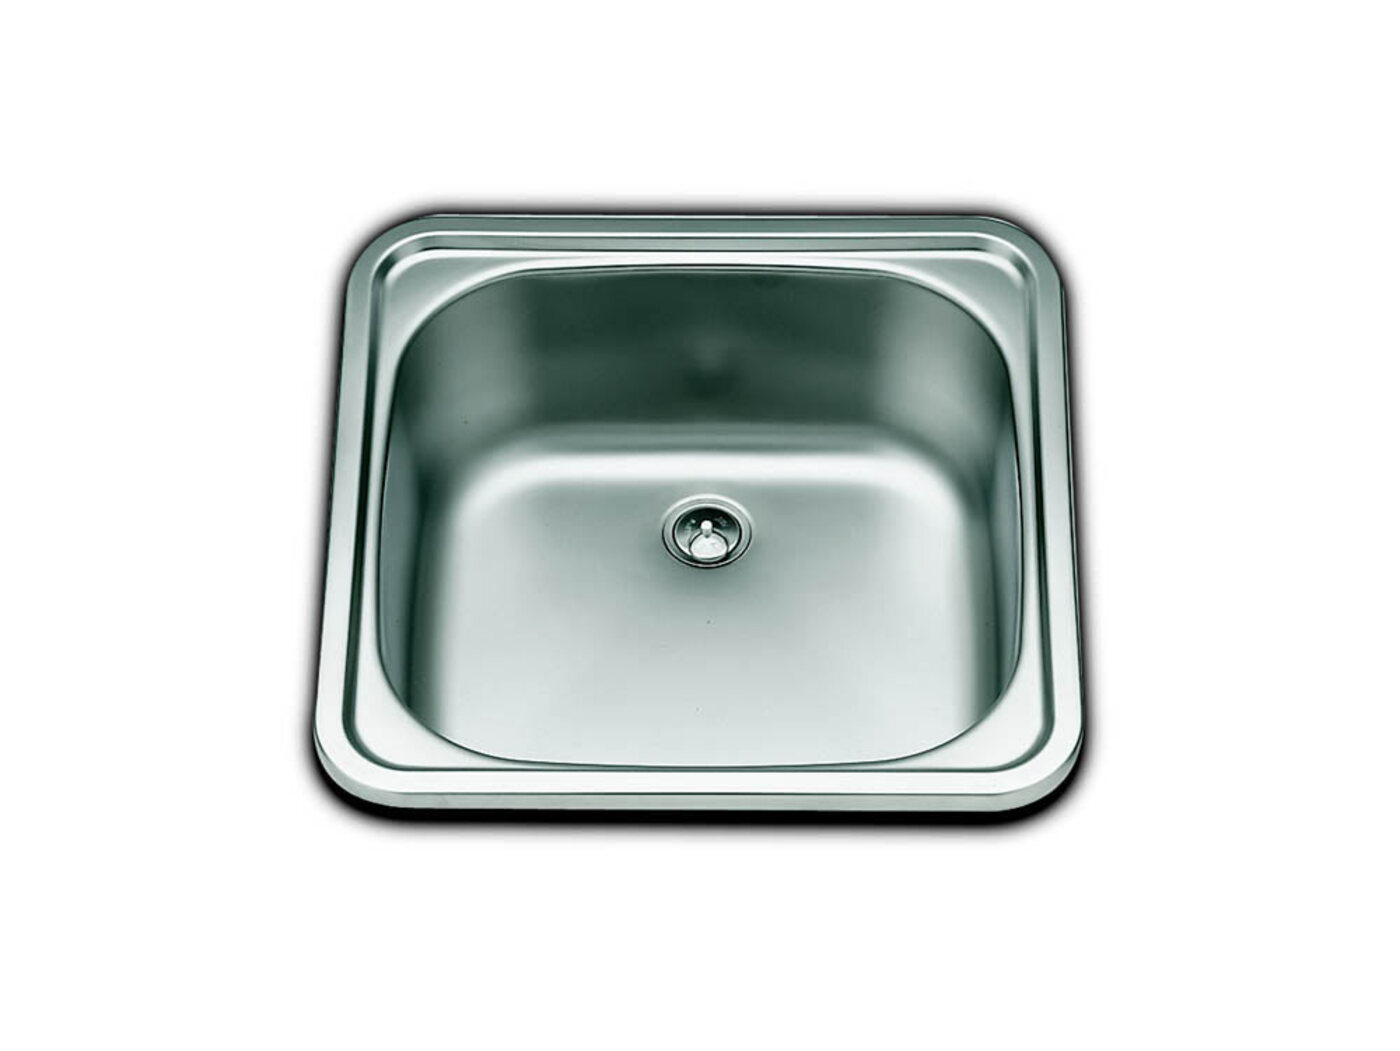 Accessory shop caravan motorhome fresh water waste kitchen sink units smev square sink 380 x - Caravan kitchen sink ...